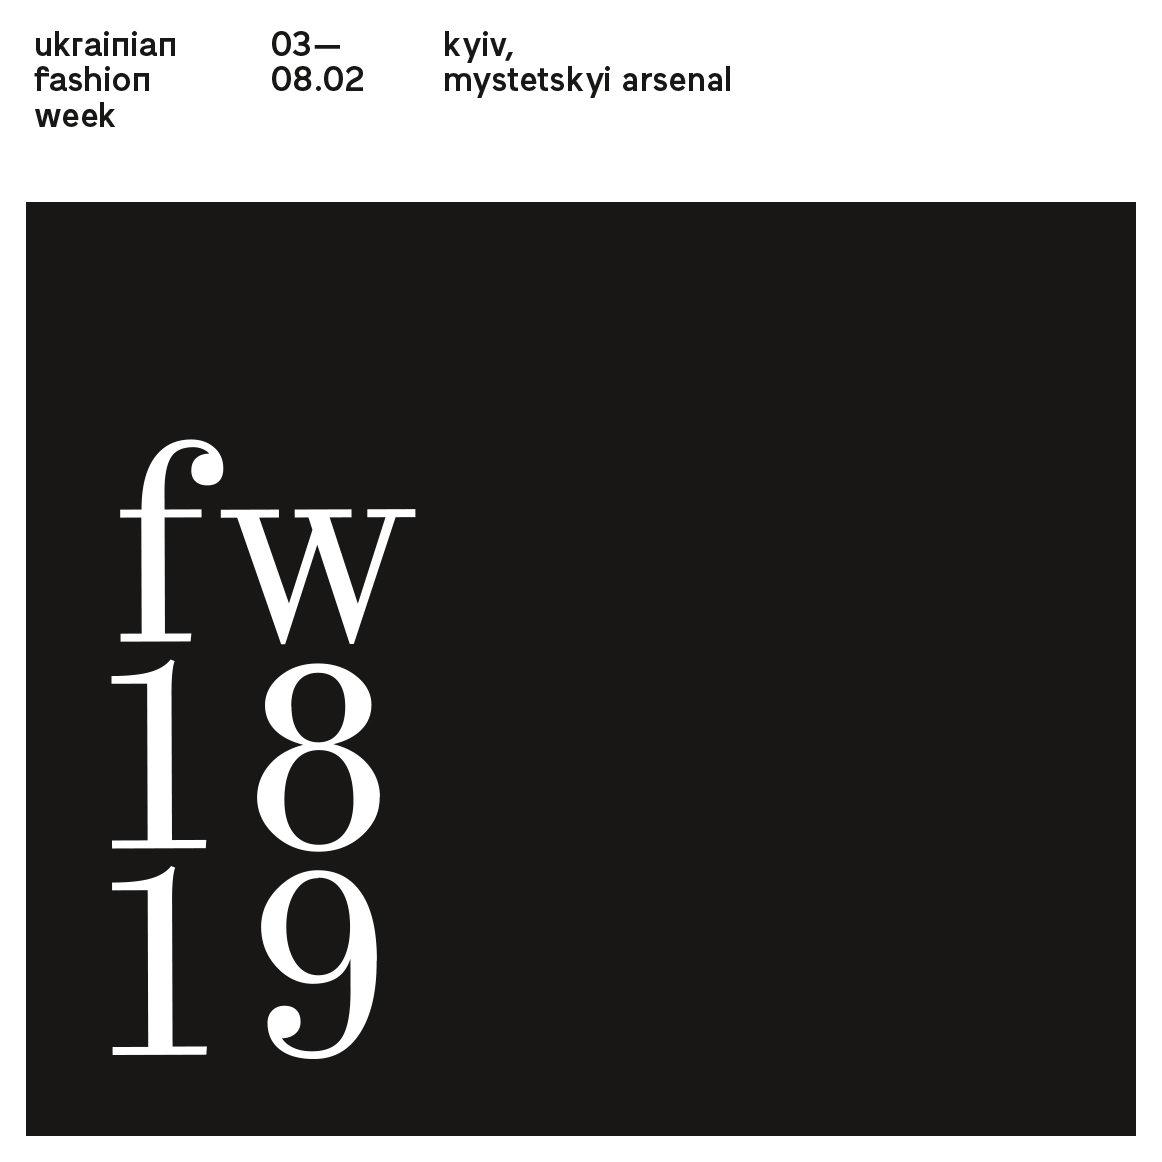 THE DATES OF UKRAINIAN FASHION WEEK NEW SEASON HAVE BEEN ANNOUNCED